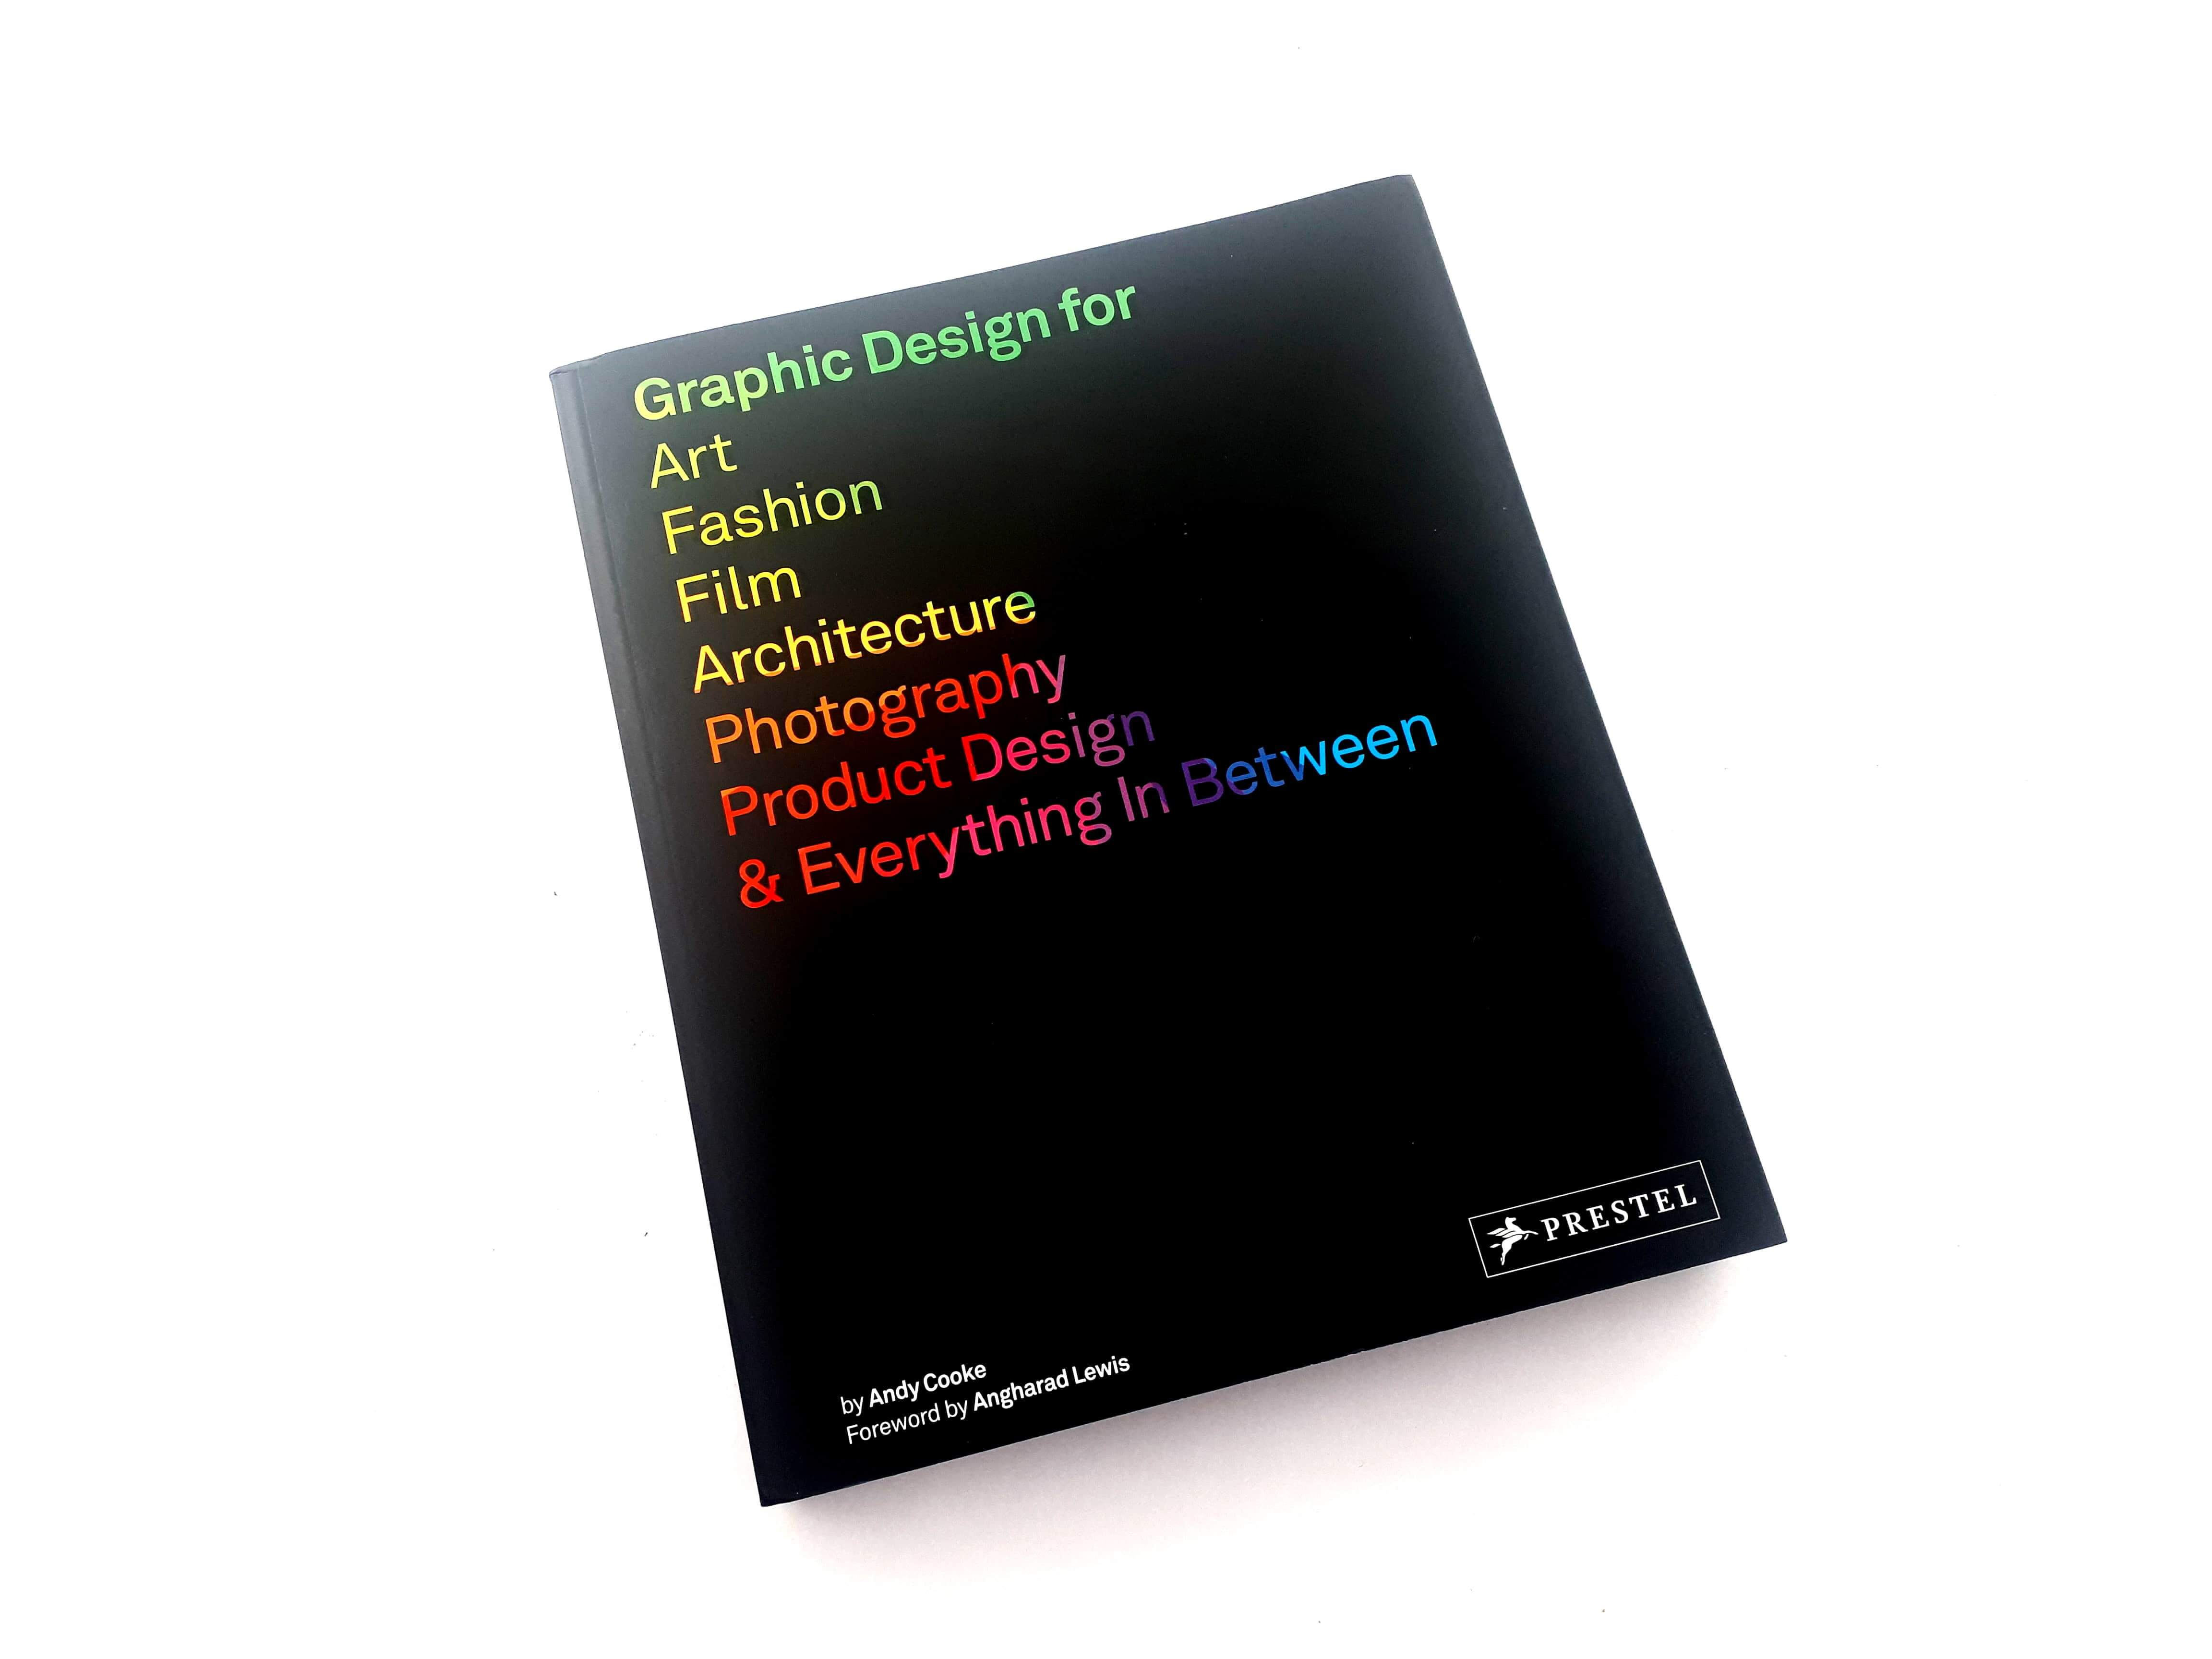 Graphic Design For Art Fashion Film Architecture Photography Product Design Everything In Between By Andy